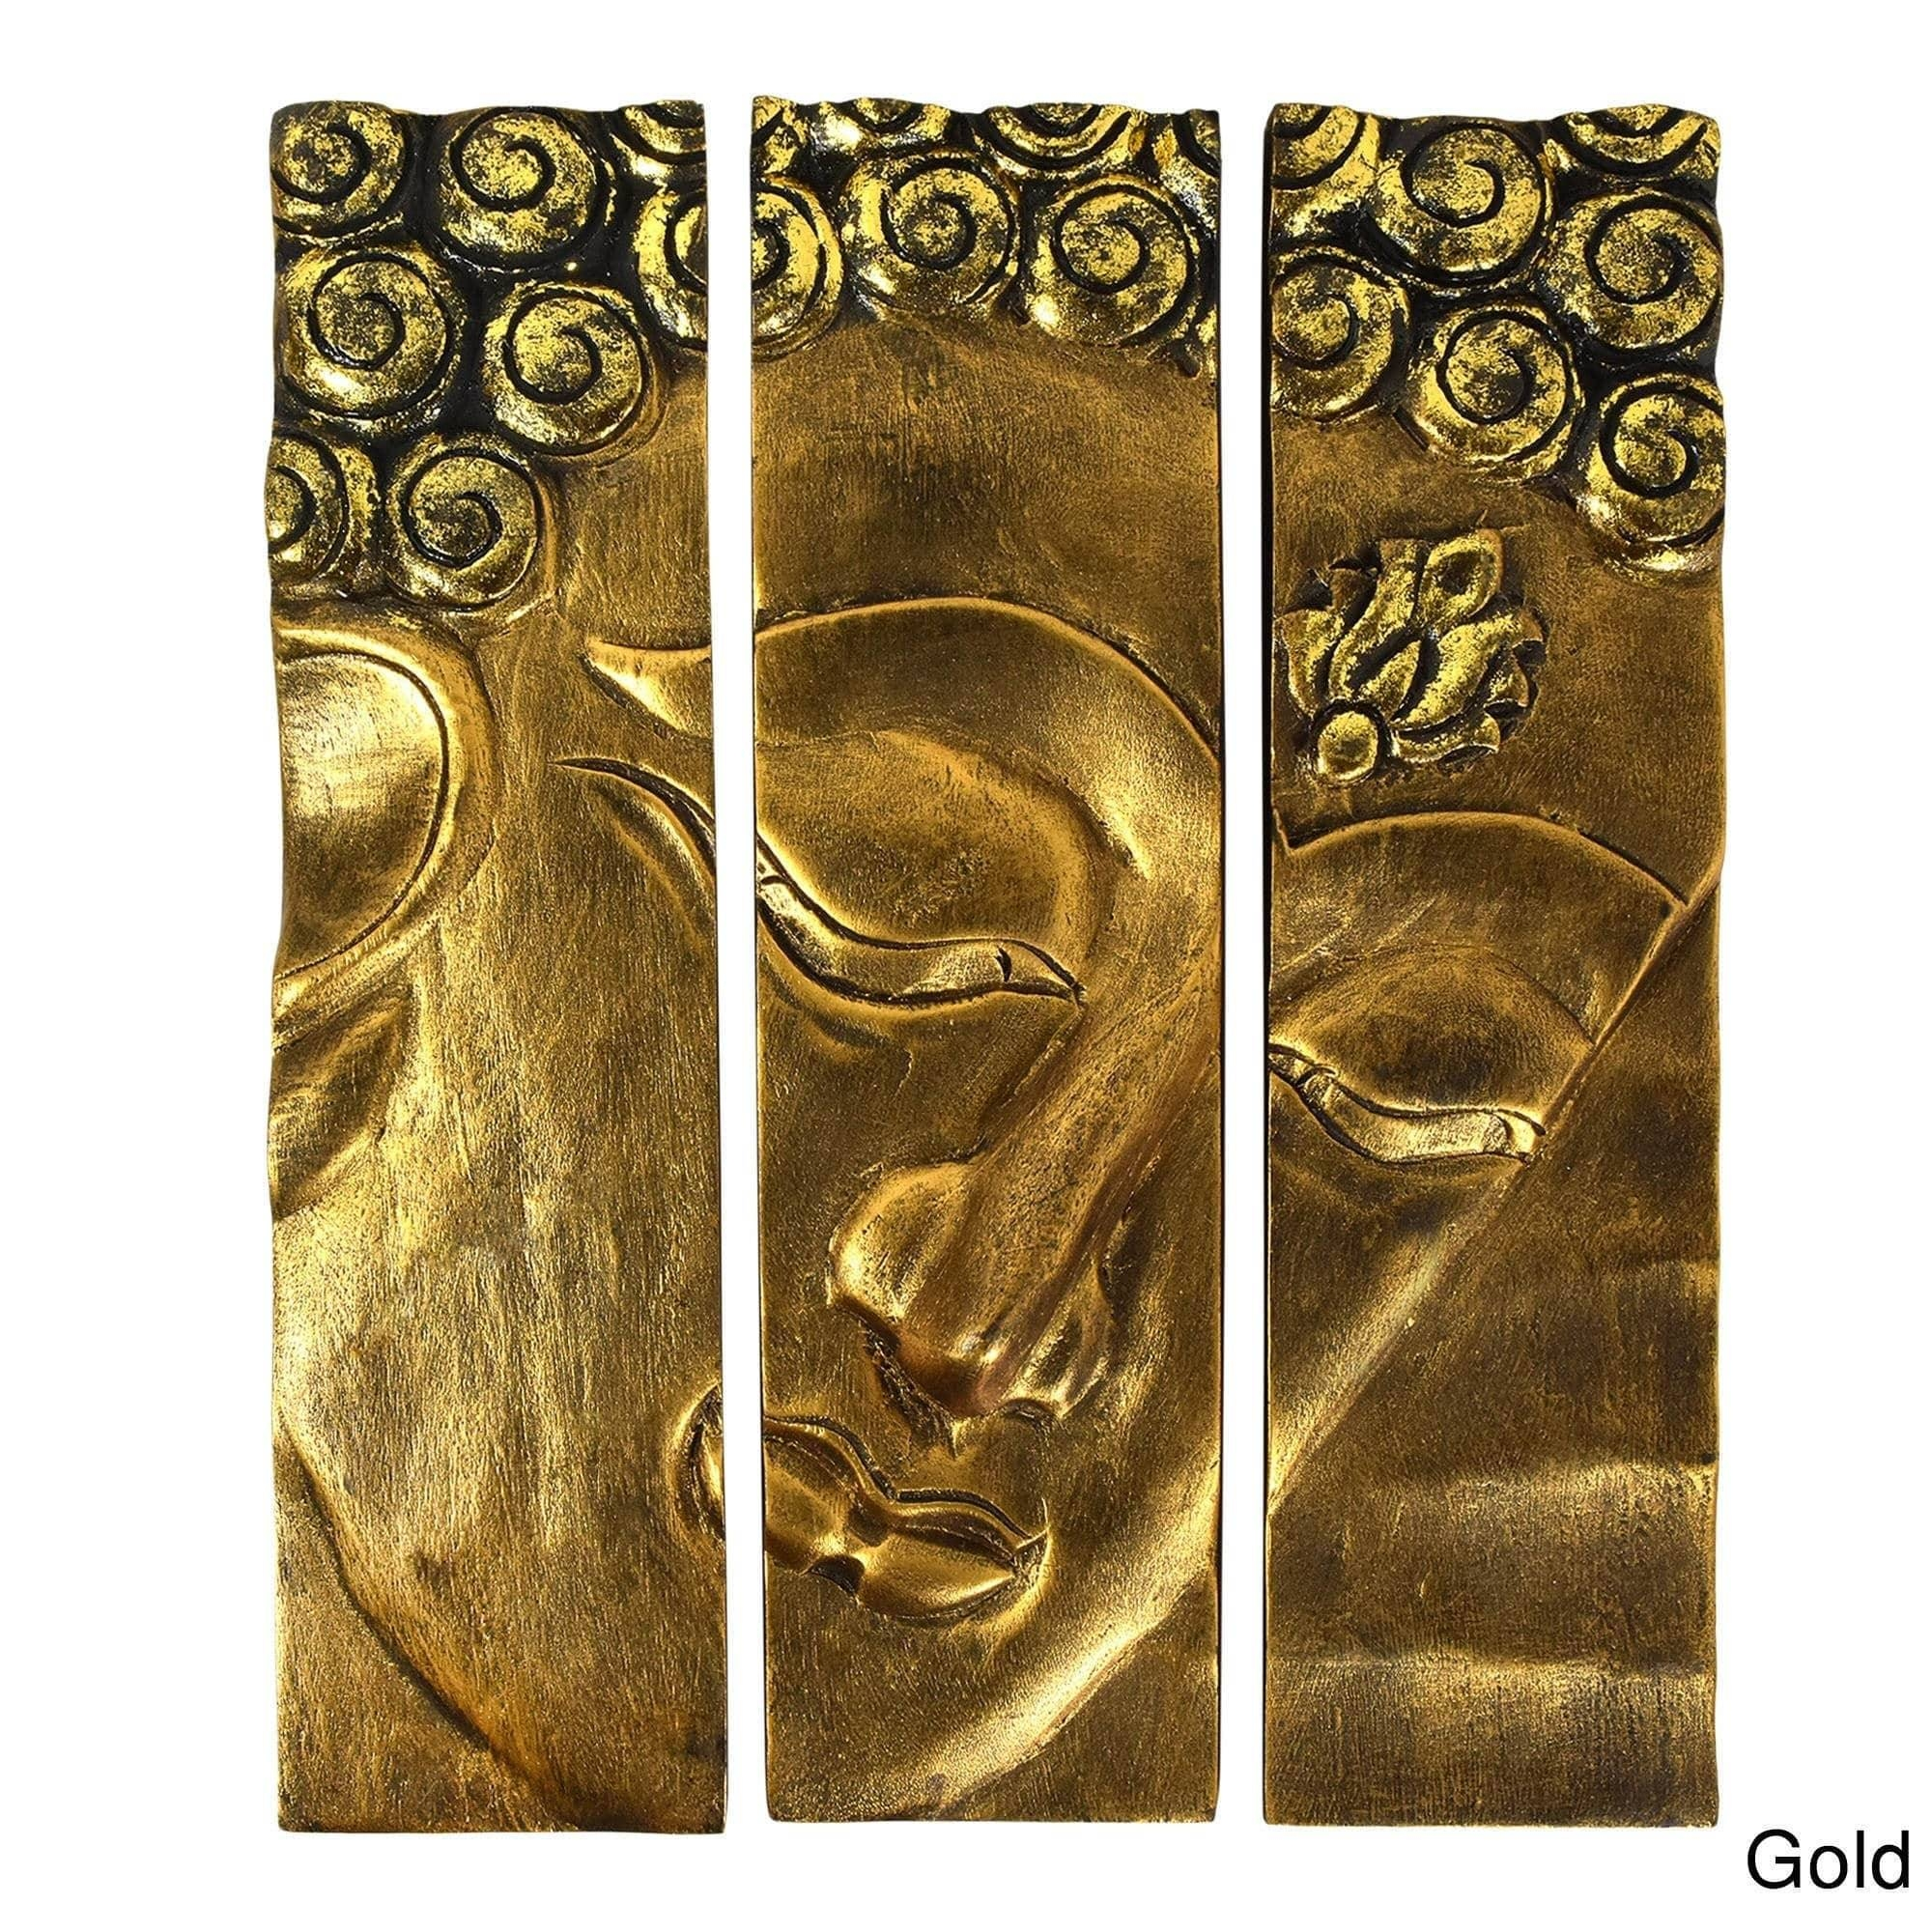 Buddha Face Three Panel Hanging Handmade Wall Art 12X15 (Thailand Regarding Most Recent Buddha Metal Wall Art (View 4 of 20)